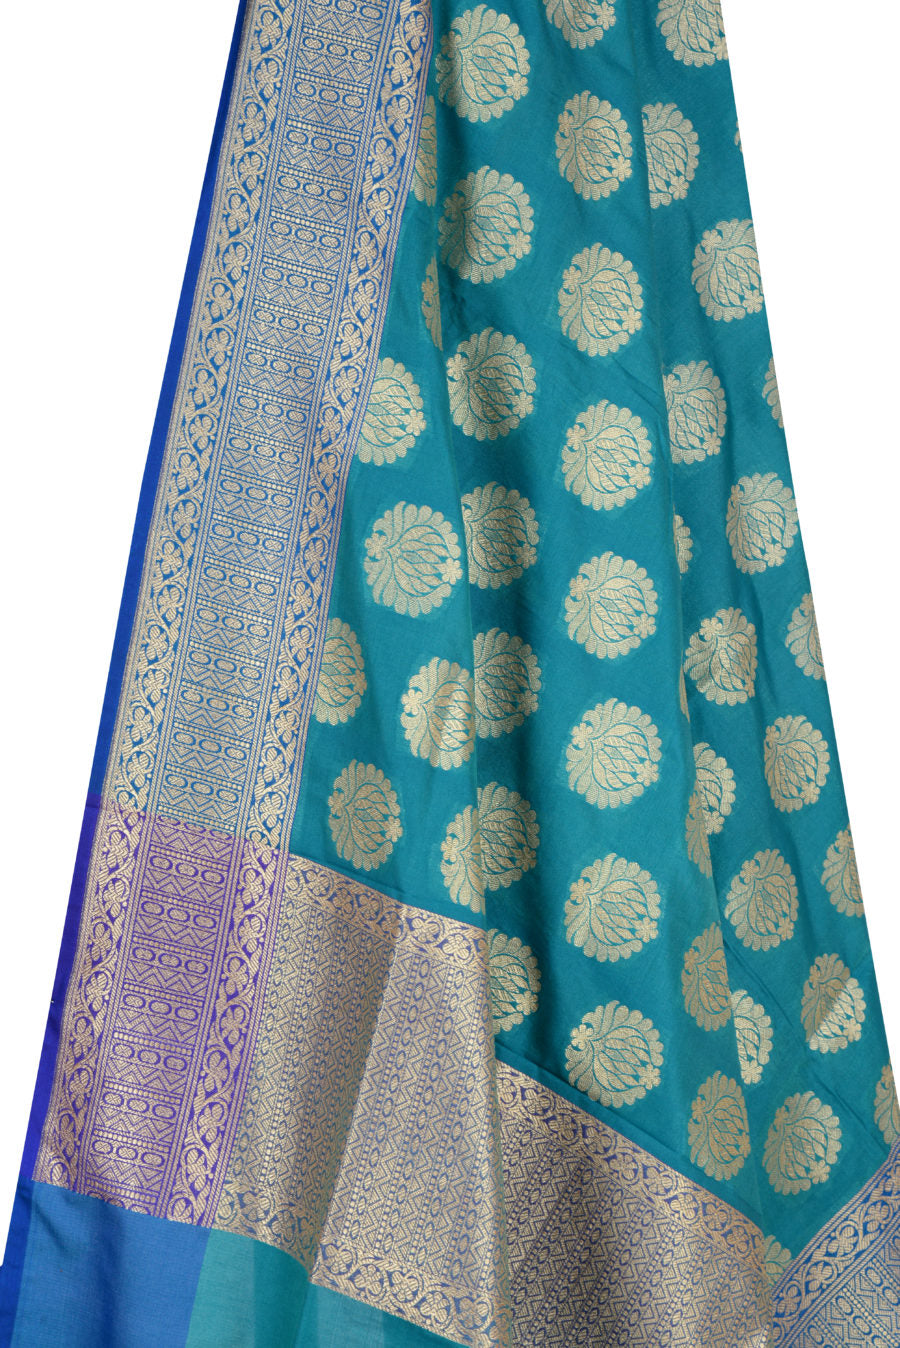 Teal Banarasi Dupatta with lotus motifs  (2) Close up